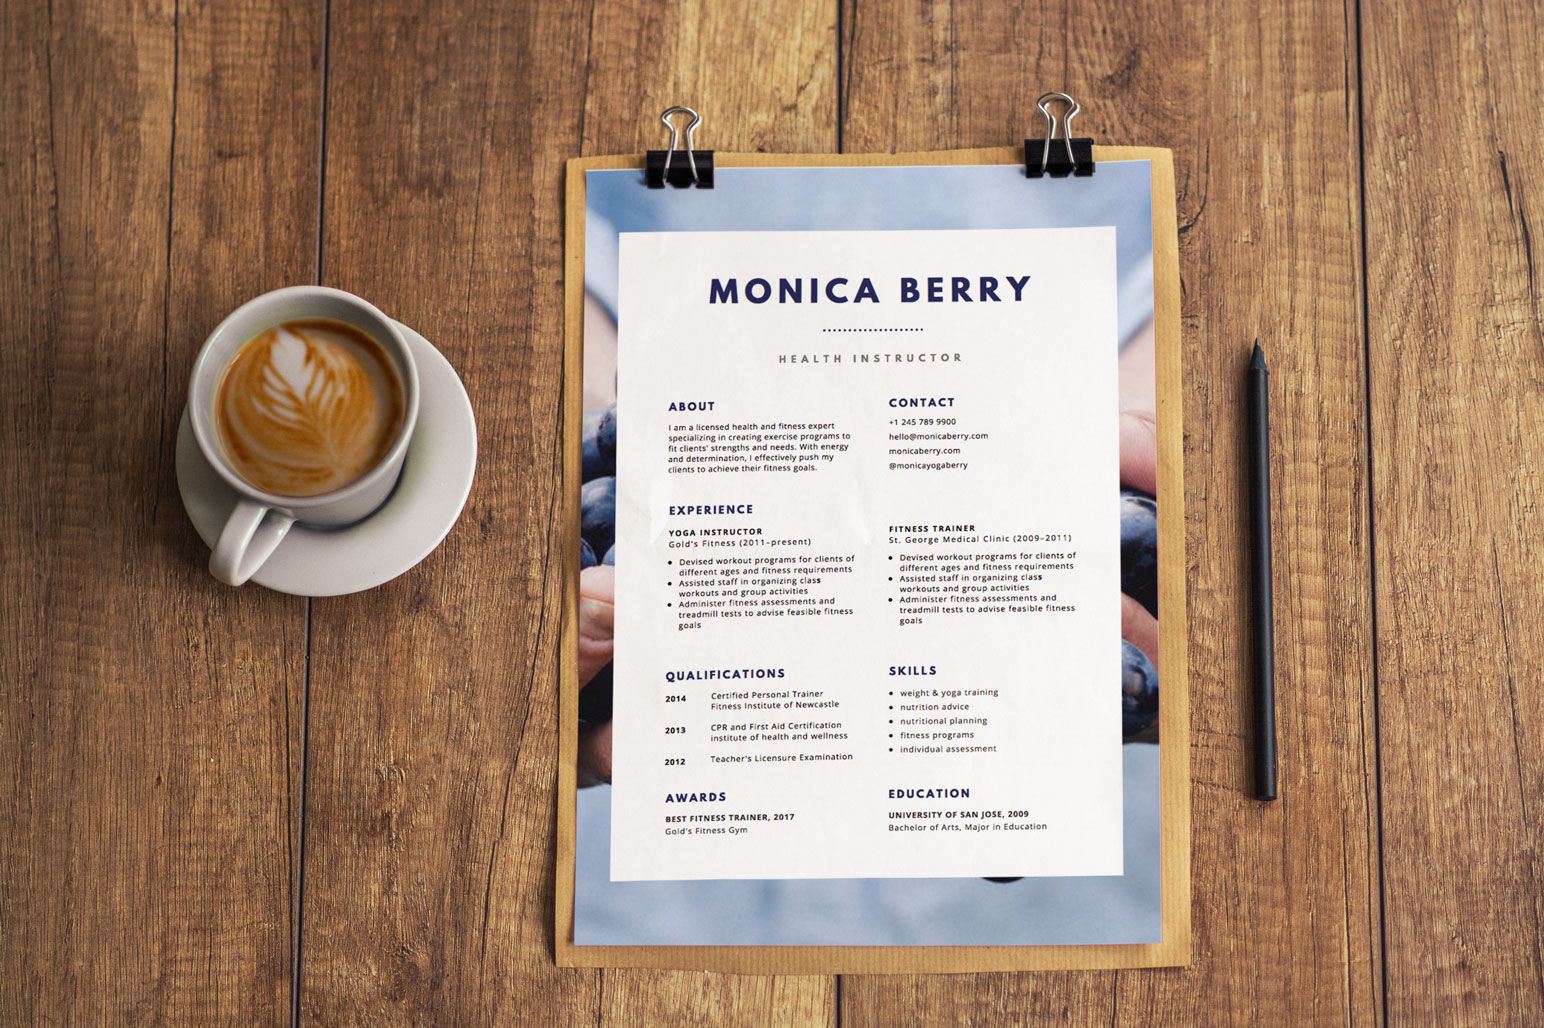 corporate_identity_1_mockup_a4_letter_4-Recovered6.jpg